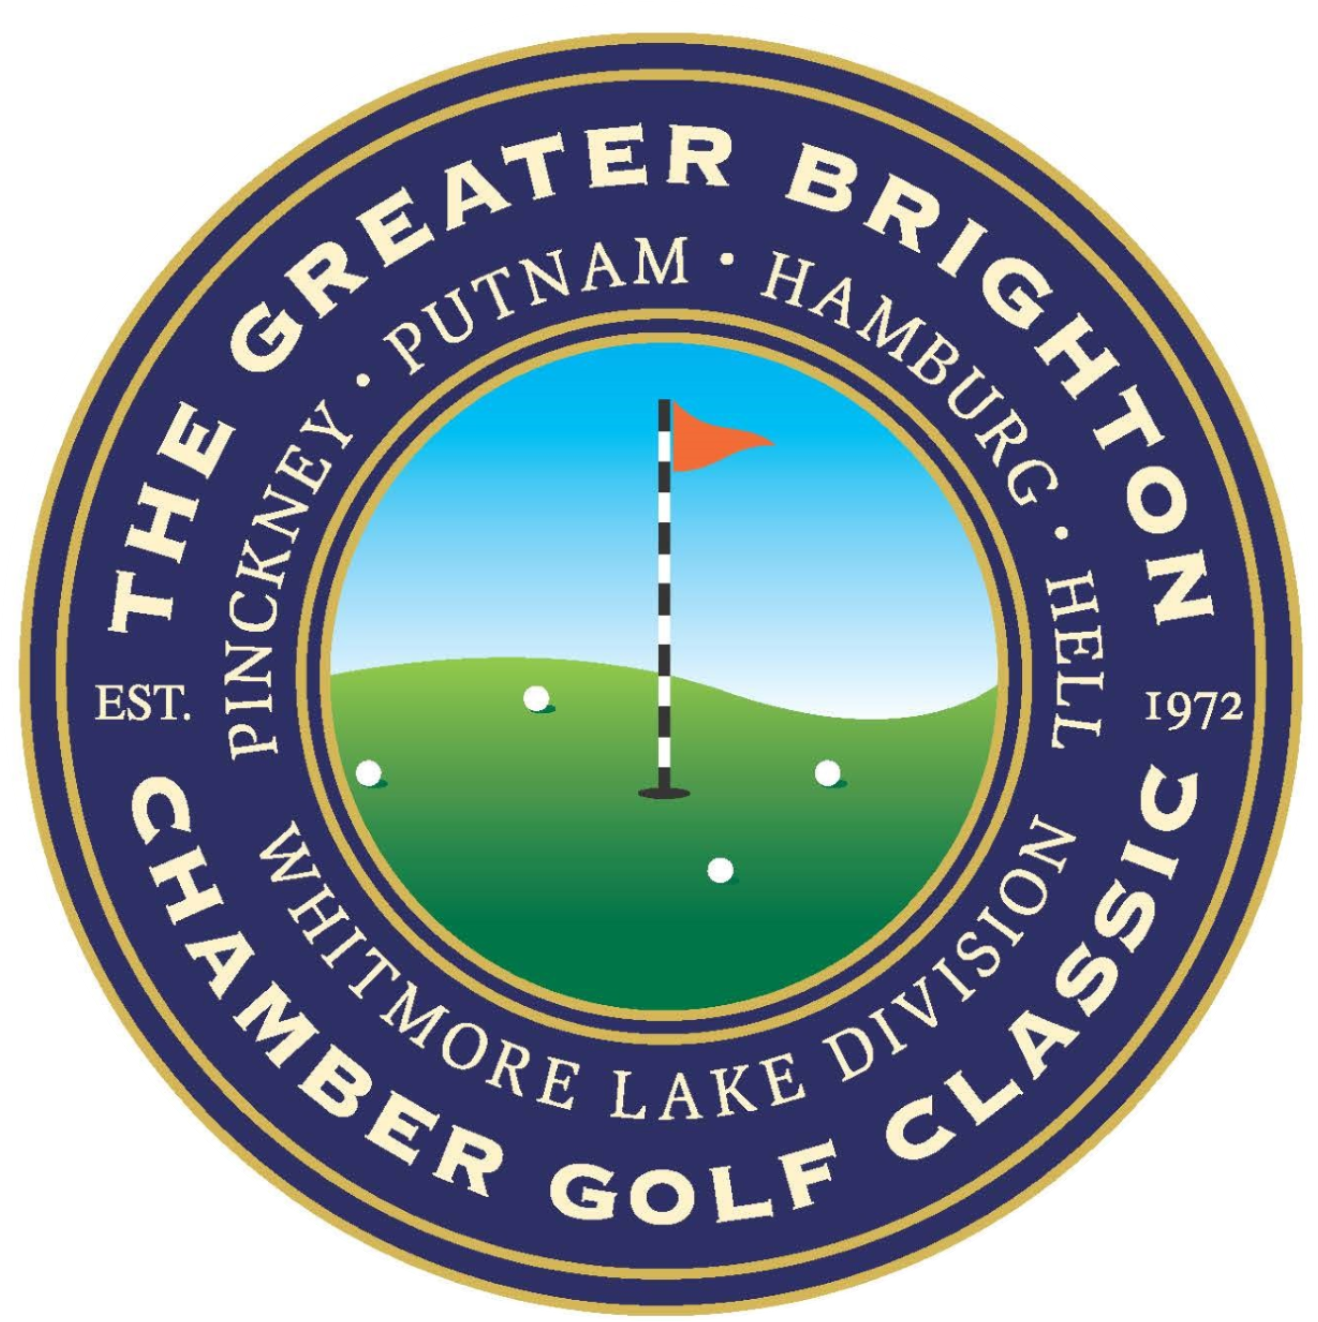 Golf-Classic-Logo-Cropped-to-Circle.png